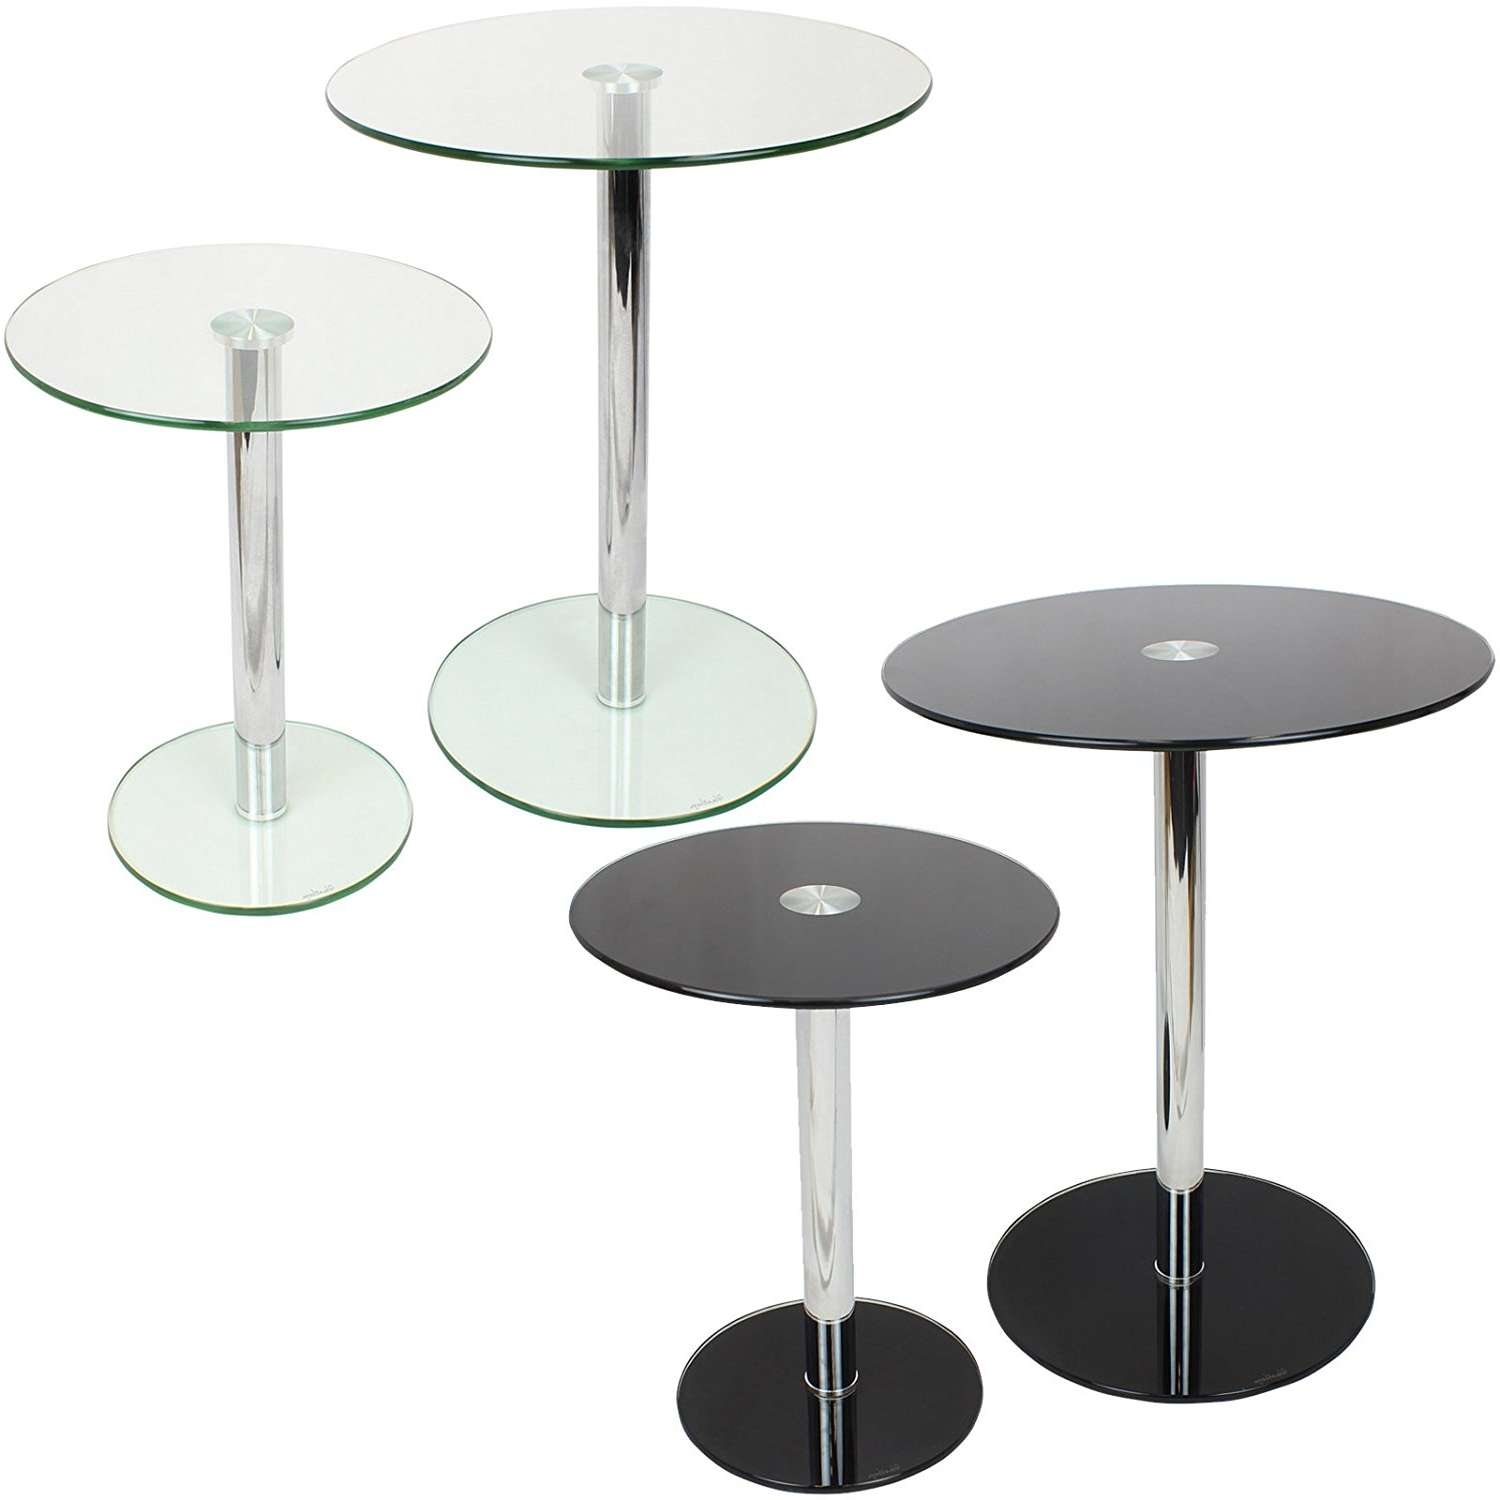 Popular Circular Glass Coffee Tables Throughout Coffee Table : Magnificent Round Wood And Glass Coffee Table Round (View 15 of 20)